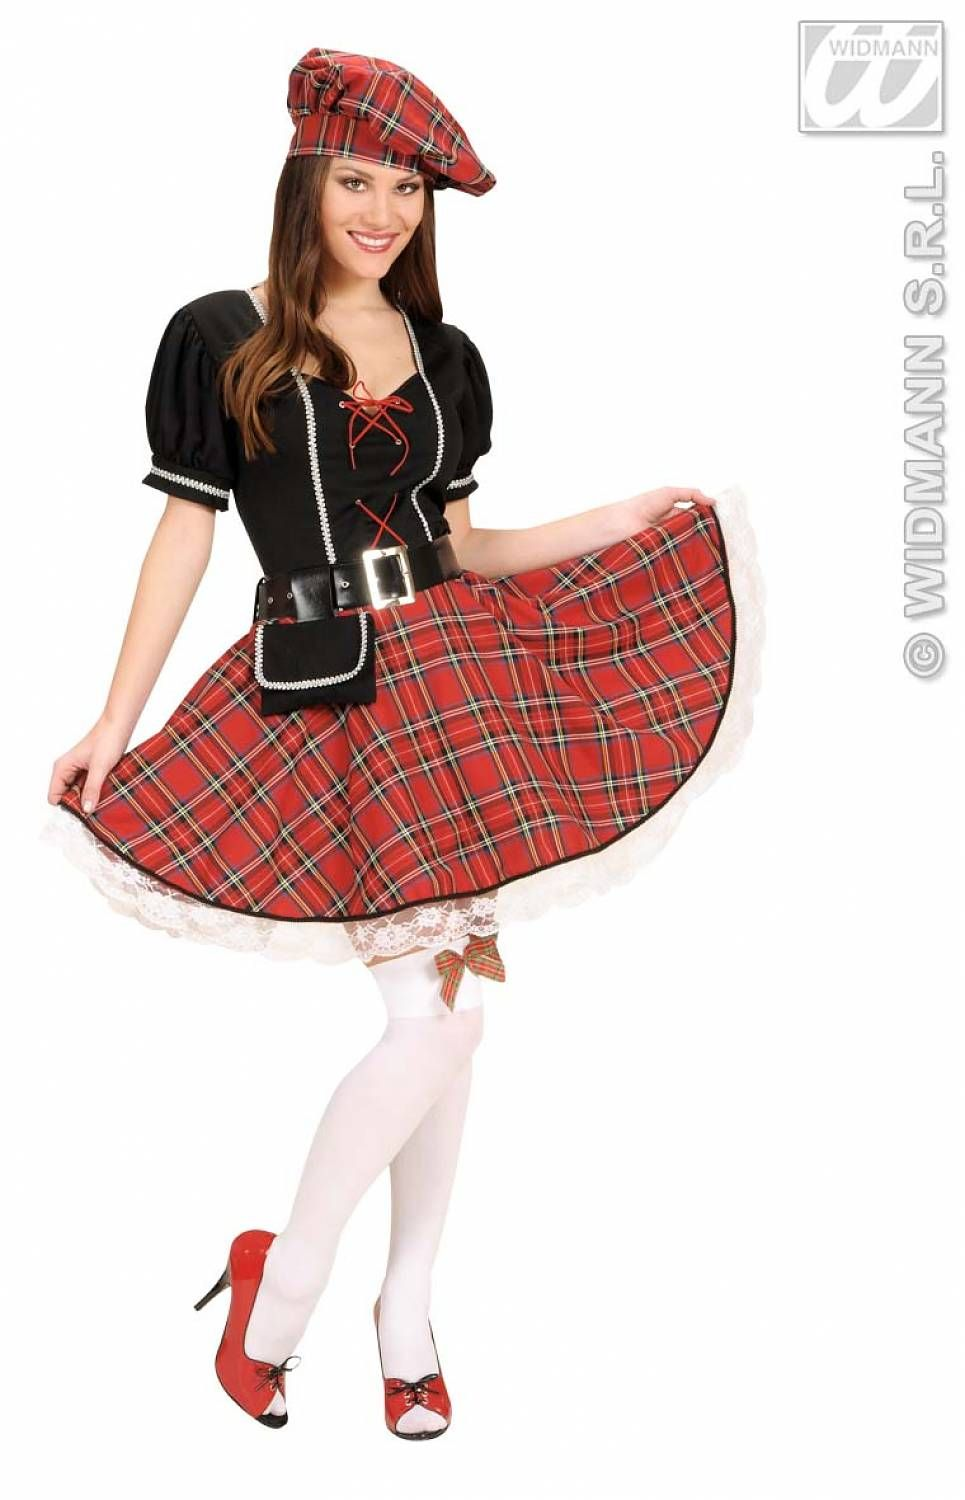 scottish girl halloween costume - Scottish Girl Halloween Costume